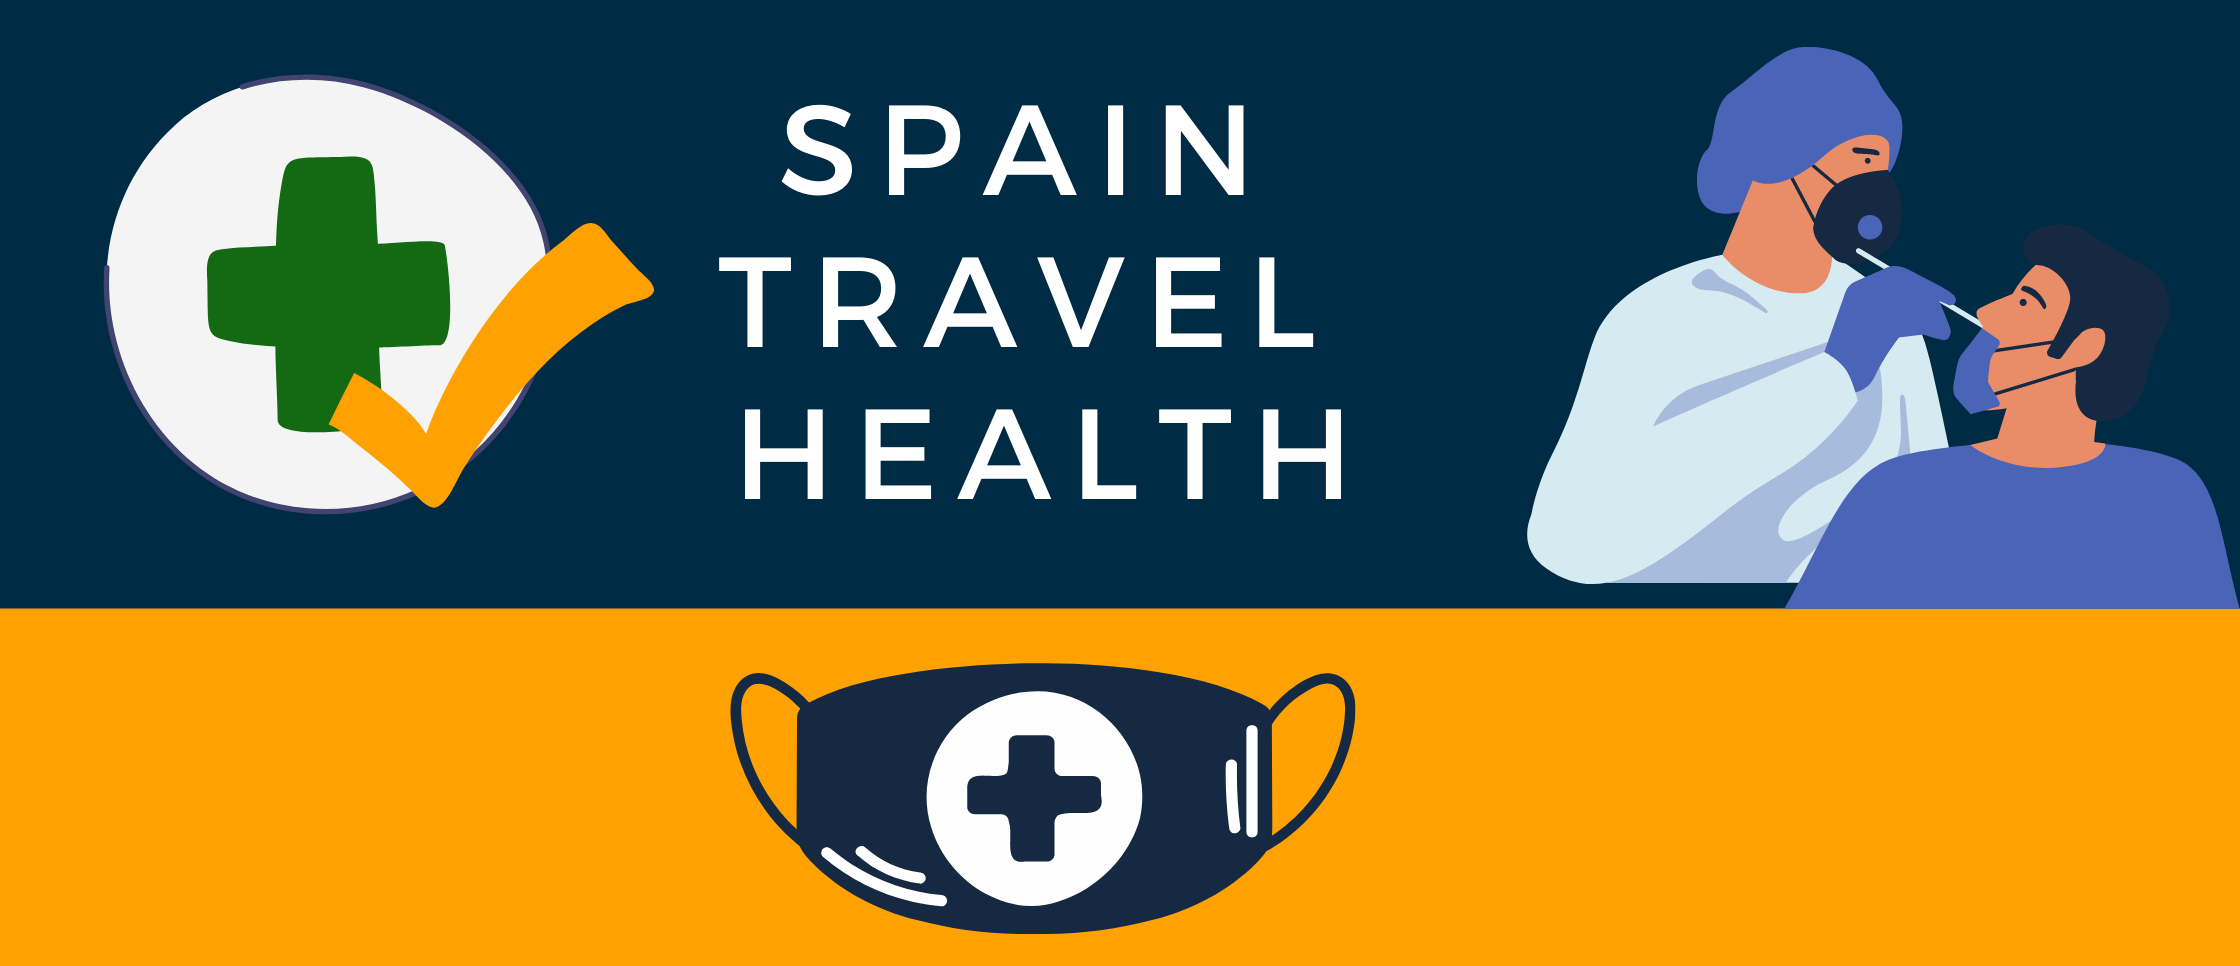 Spain Travel Health